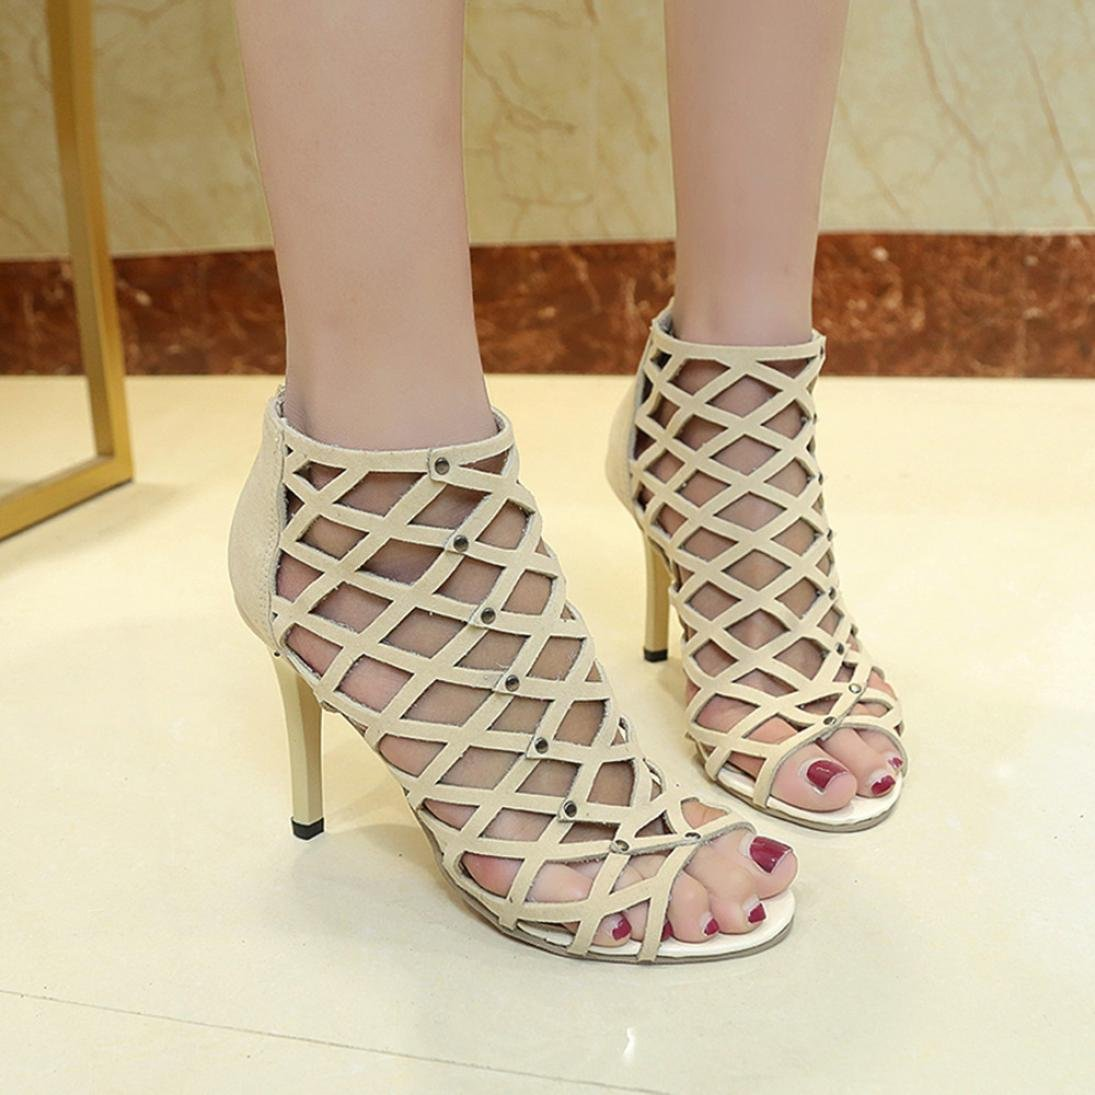 6020fc67f03 OverDose Women s Fashion Peep Toe High Heels Shoes Rivet Roman Gladiator  Sandals  Amazon.co.uk  Clothing